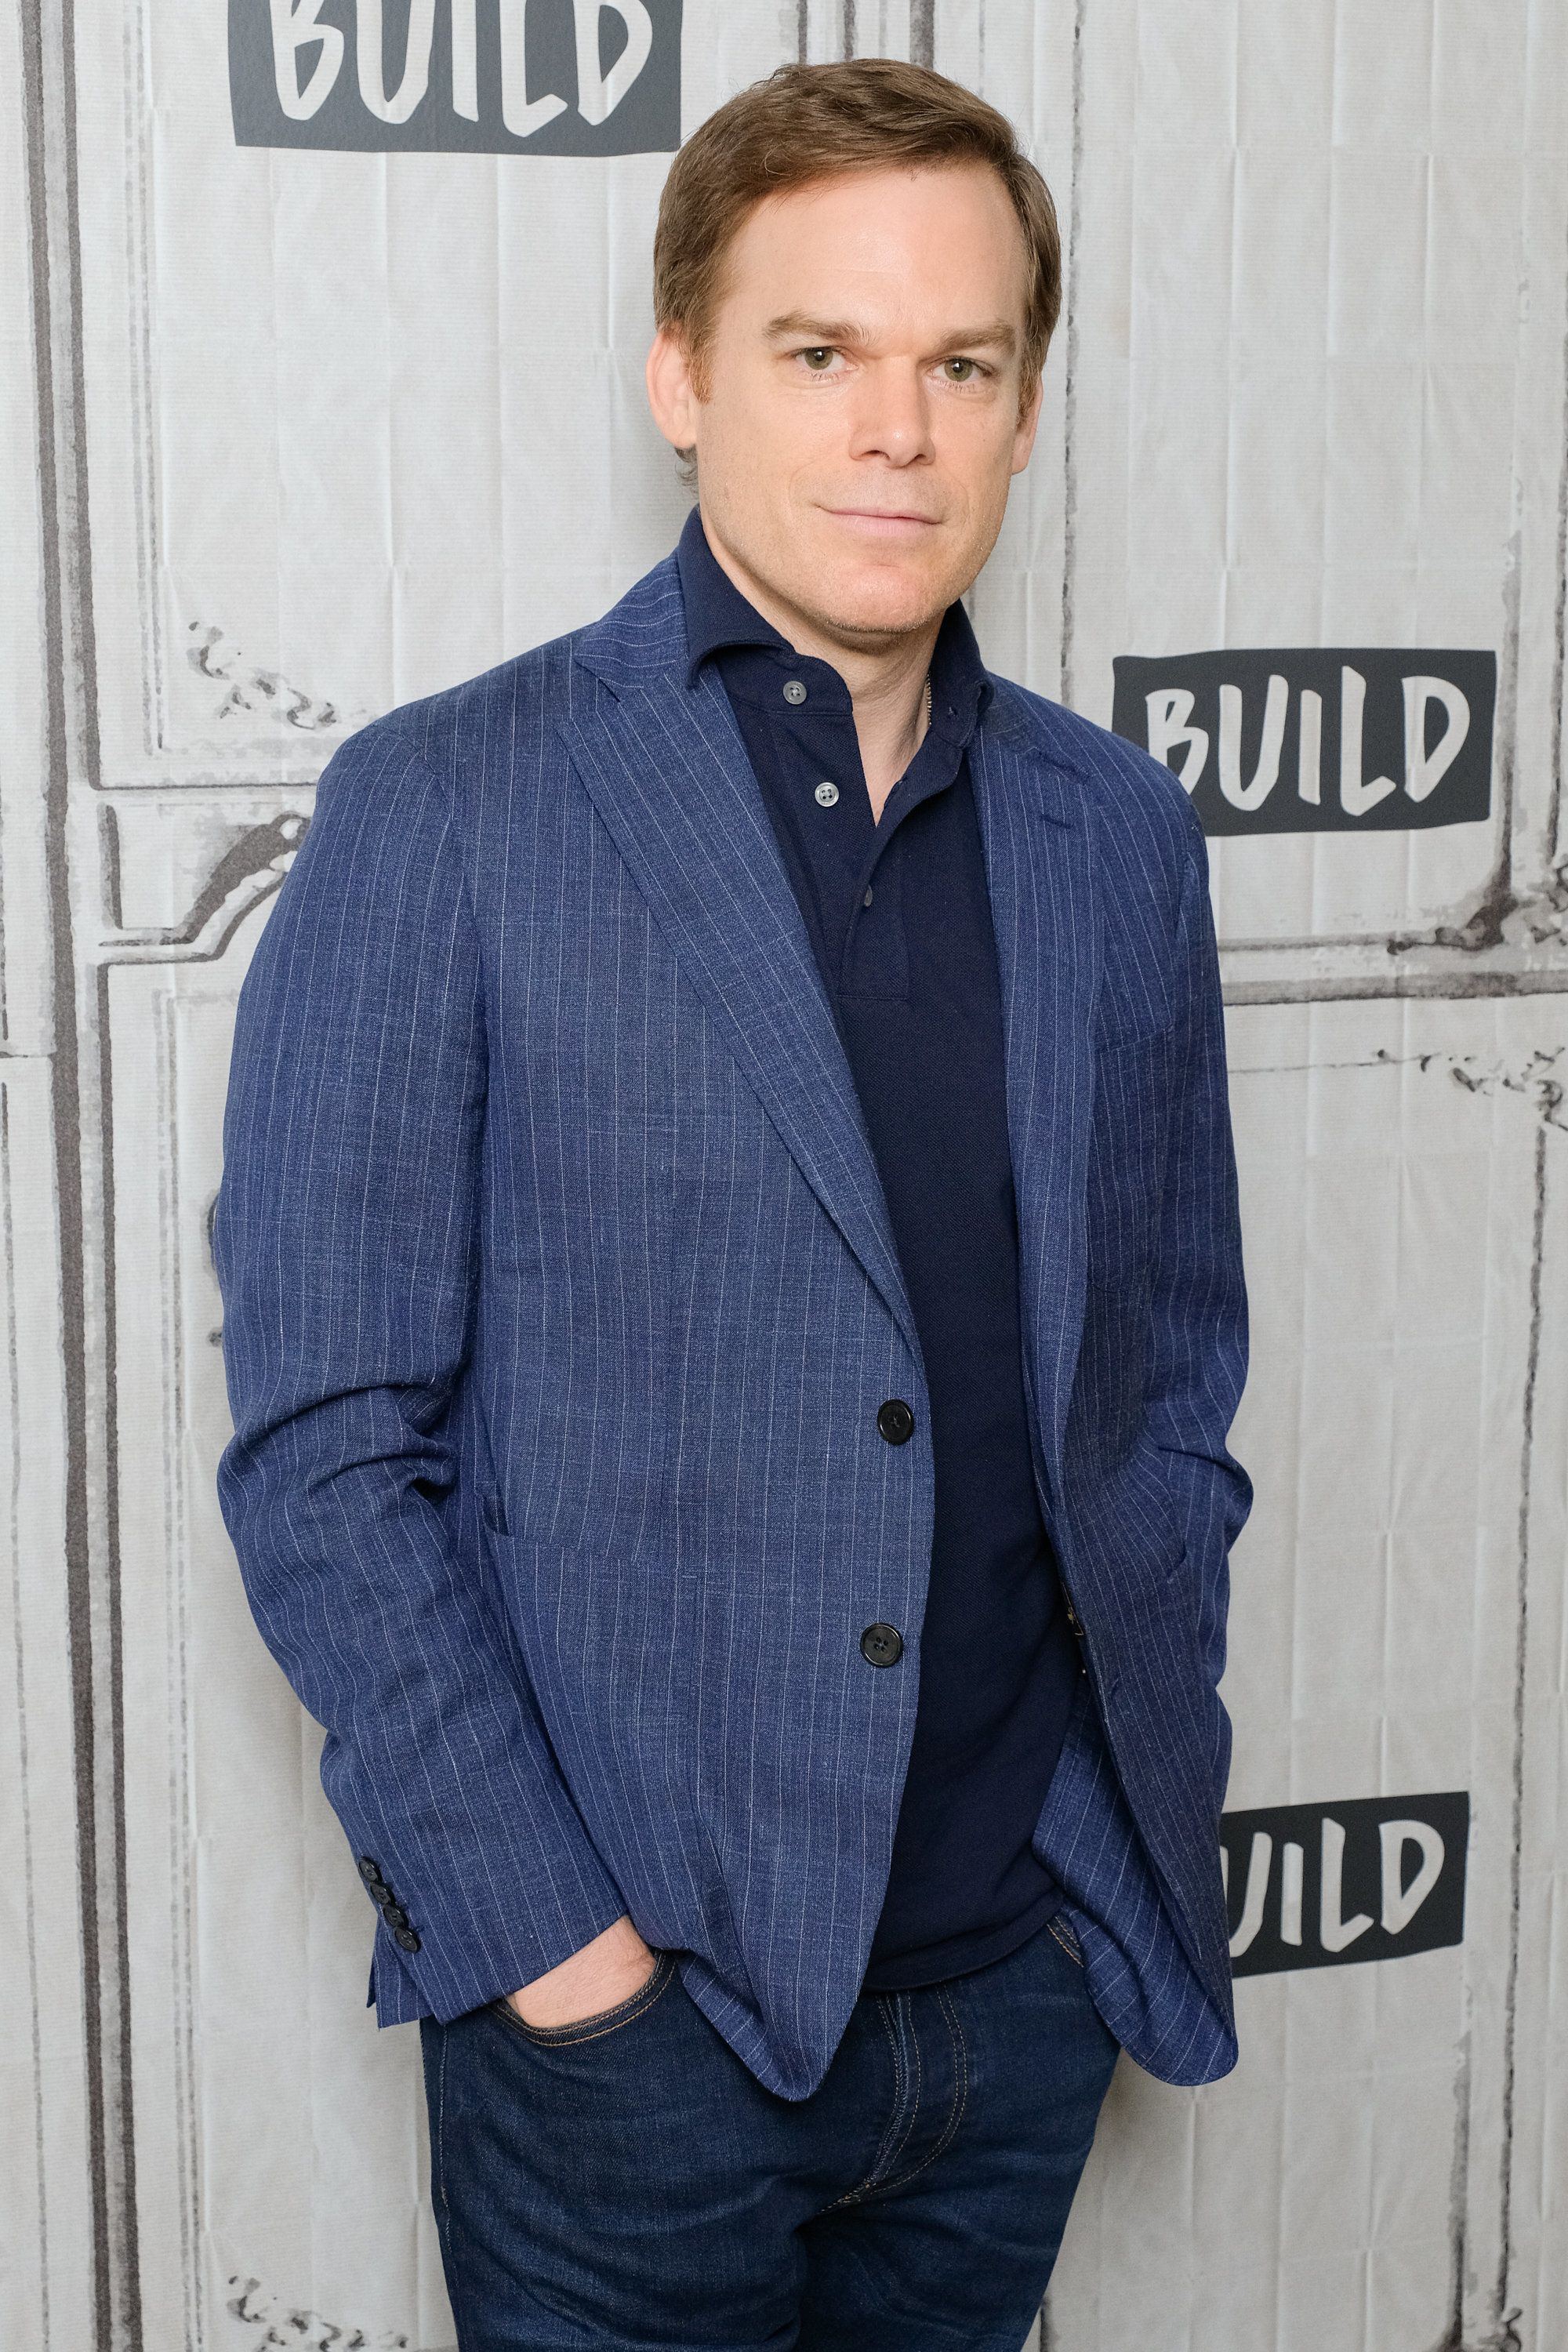 NEW YORK, NY - MAY 09:  Actor Michael C. Hall visits BUILD Series to discuss his new Netflix series 'Safe' on May 9, 2018 in New York City.  (Photo by Matthew Eisman/Getty Images)